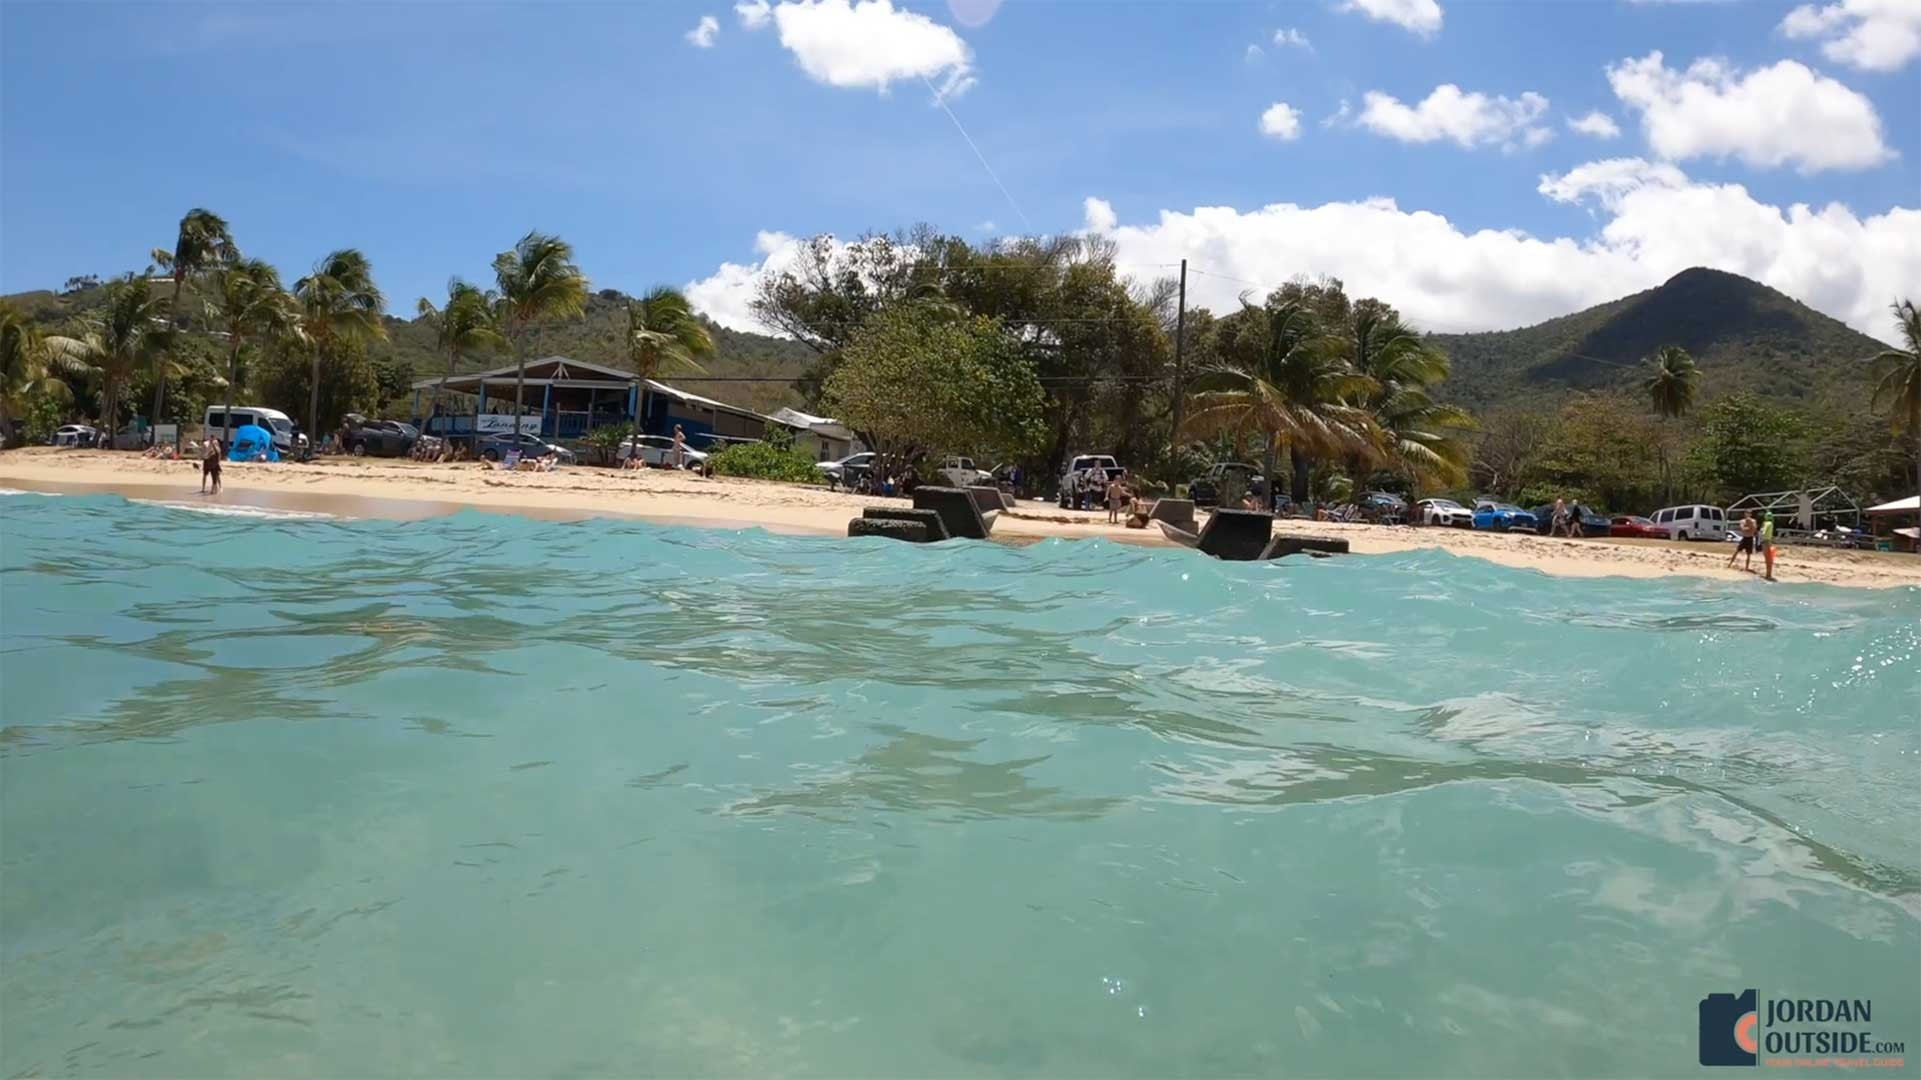 Pier View at from the ocean at Cane Bay Beach, St. Croix